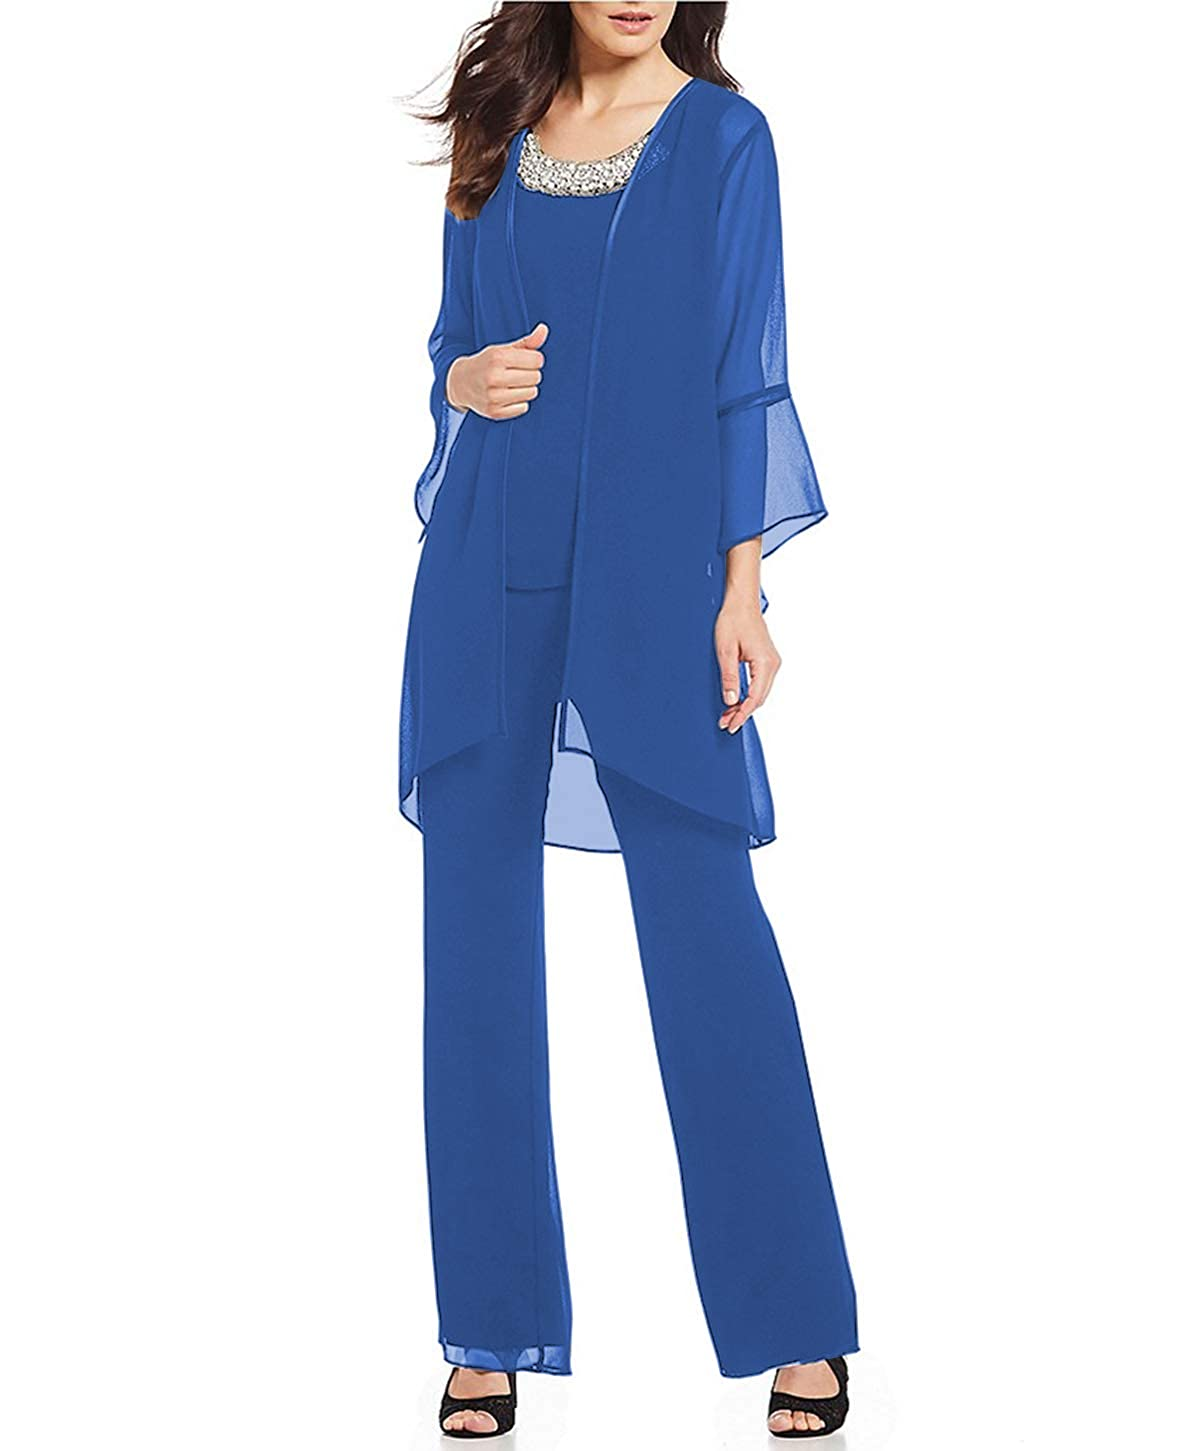 bluee Aesido Women's Mother of The Bride Pant Suits 3 Pieces Evening Special Occasion Dress Ouftit Groom Wedding